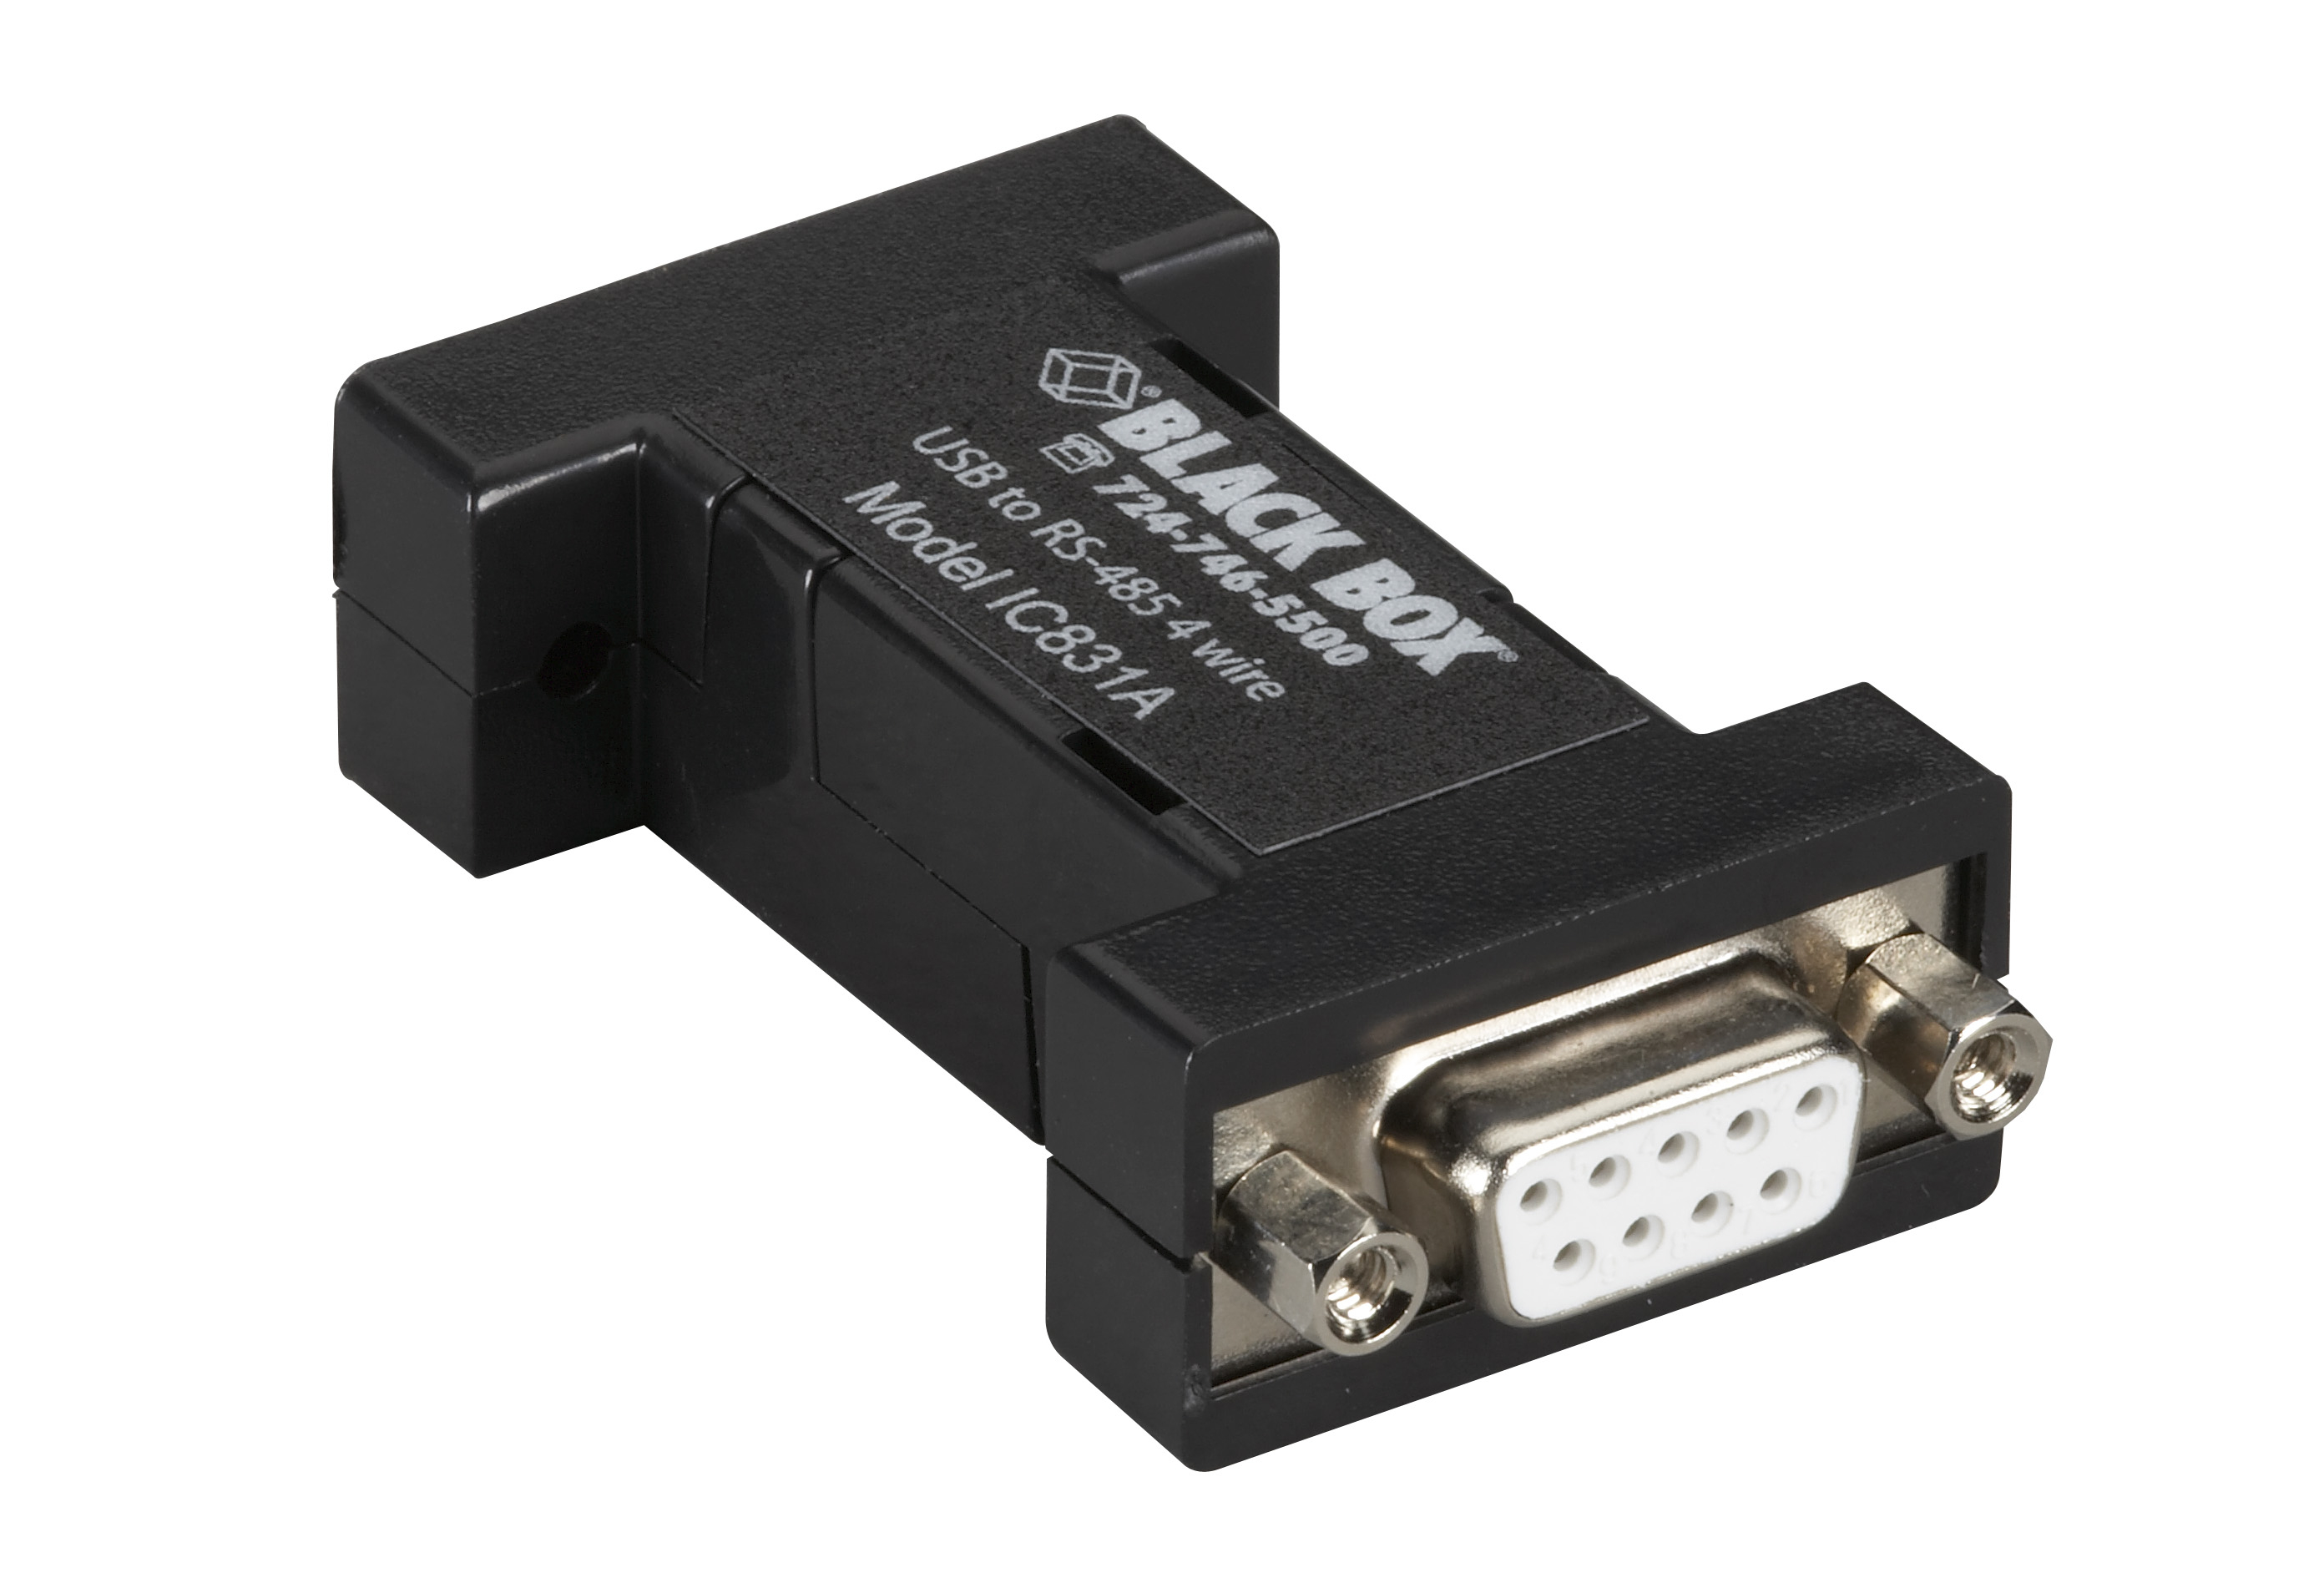 Usb 2.0 To Rs485 4-Wire Converter, Db9, 1-Port | Black Box - Usb To Rs485 Wiring Diagram